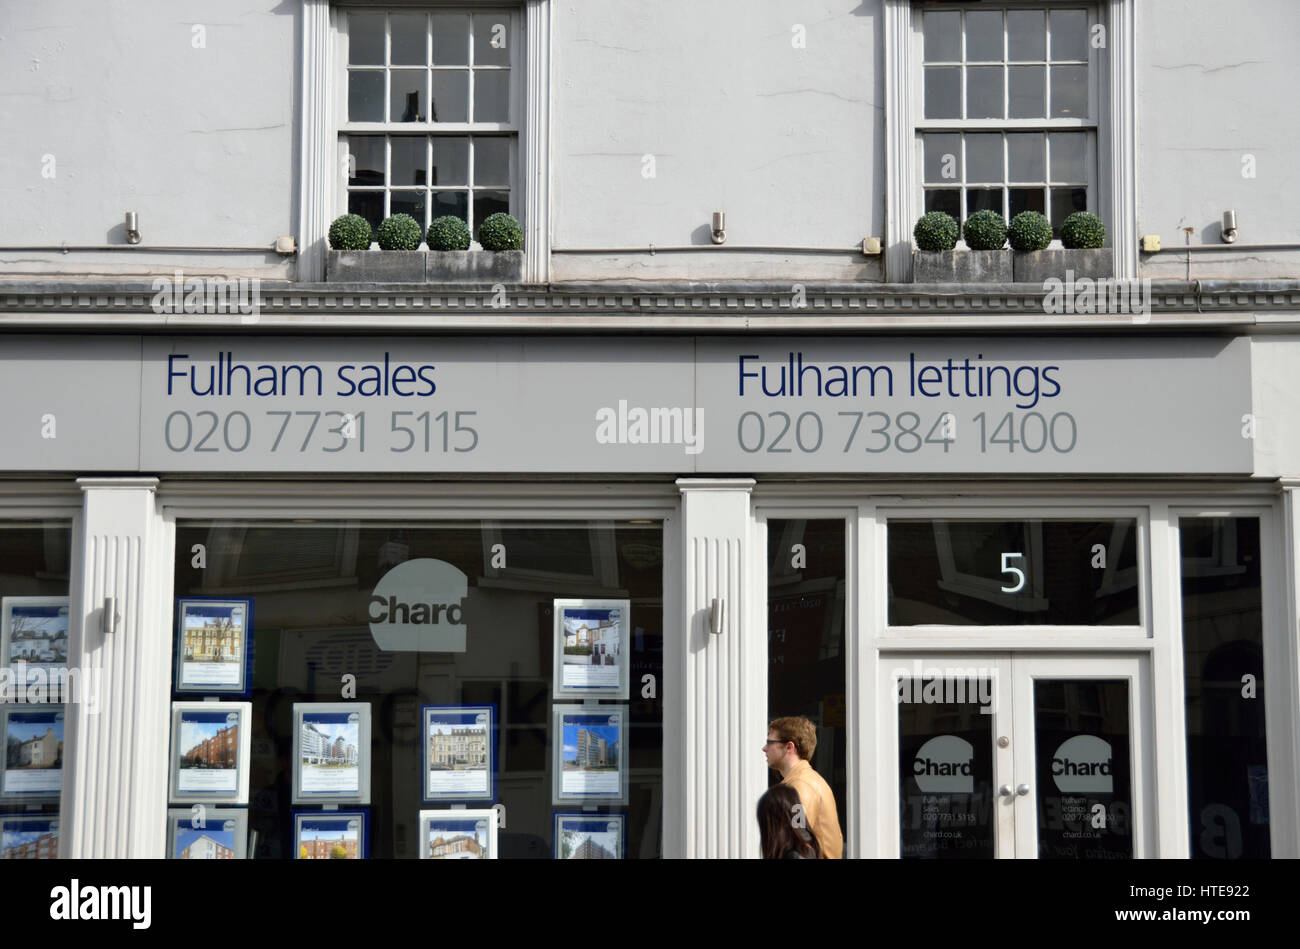 Fulham estate agent lettings and sales, London, UK. - Stock Image